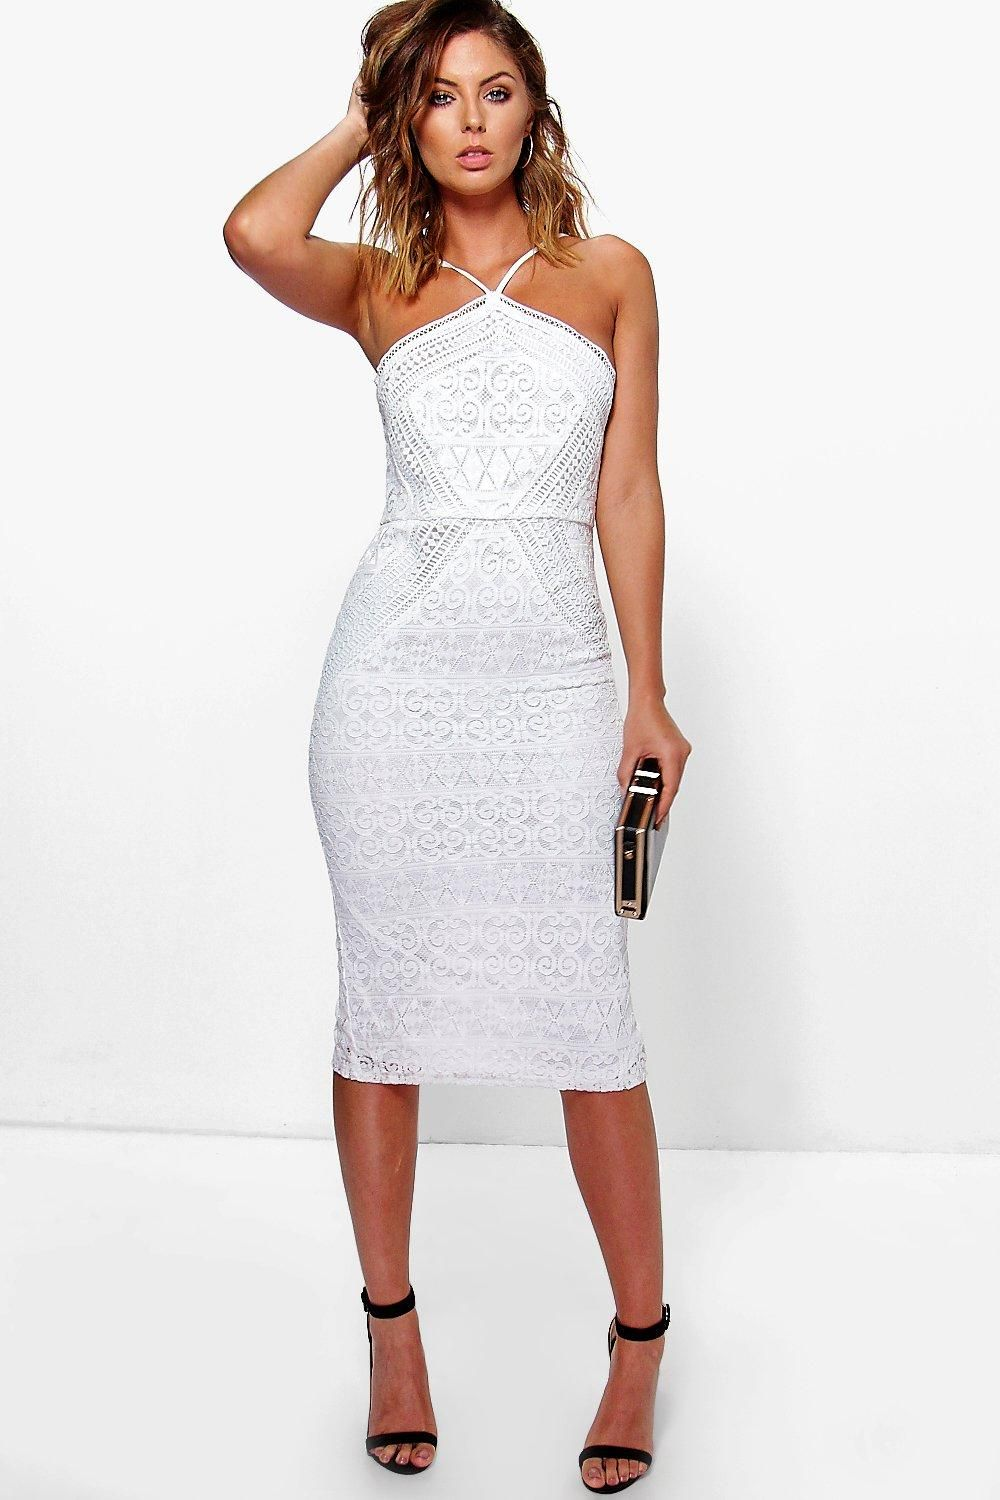 Lace dress bodycon  Issy Strappy Lace Panelled Midi Bodycon Dress  Bodycon dress